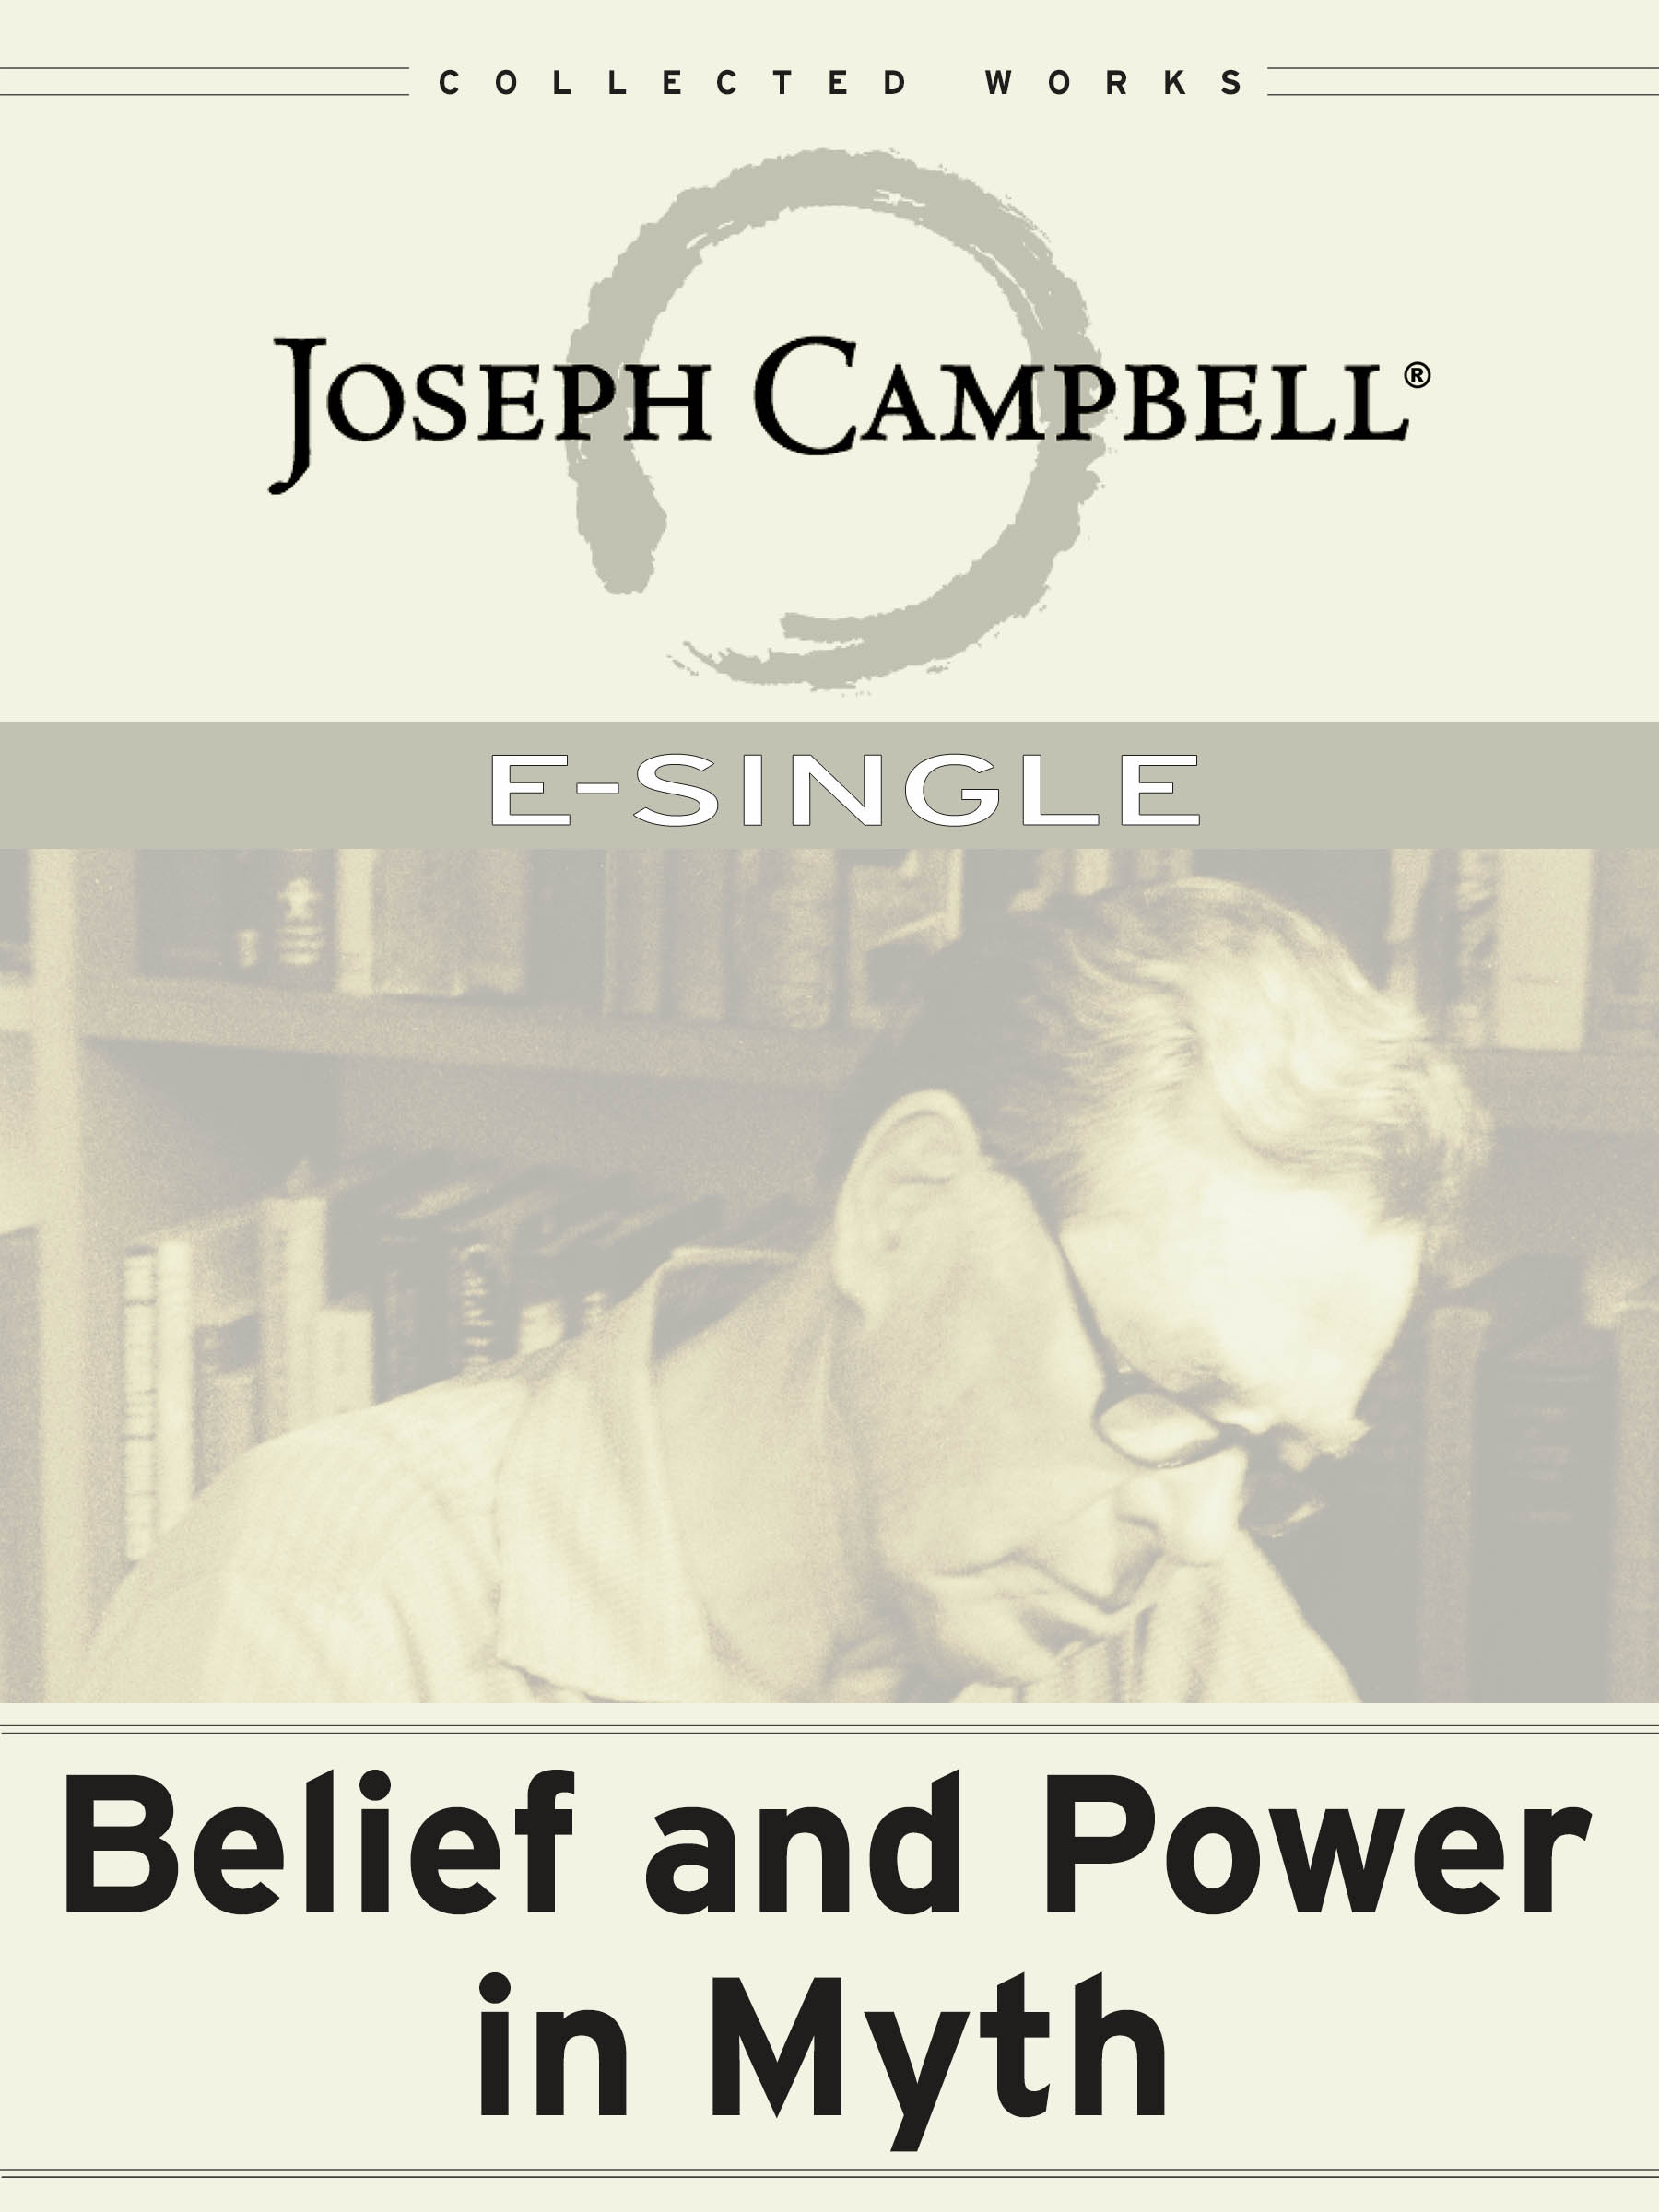 Belief and Power in Myth (Esingle)